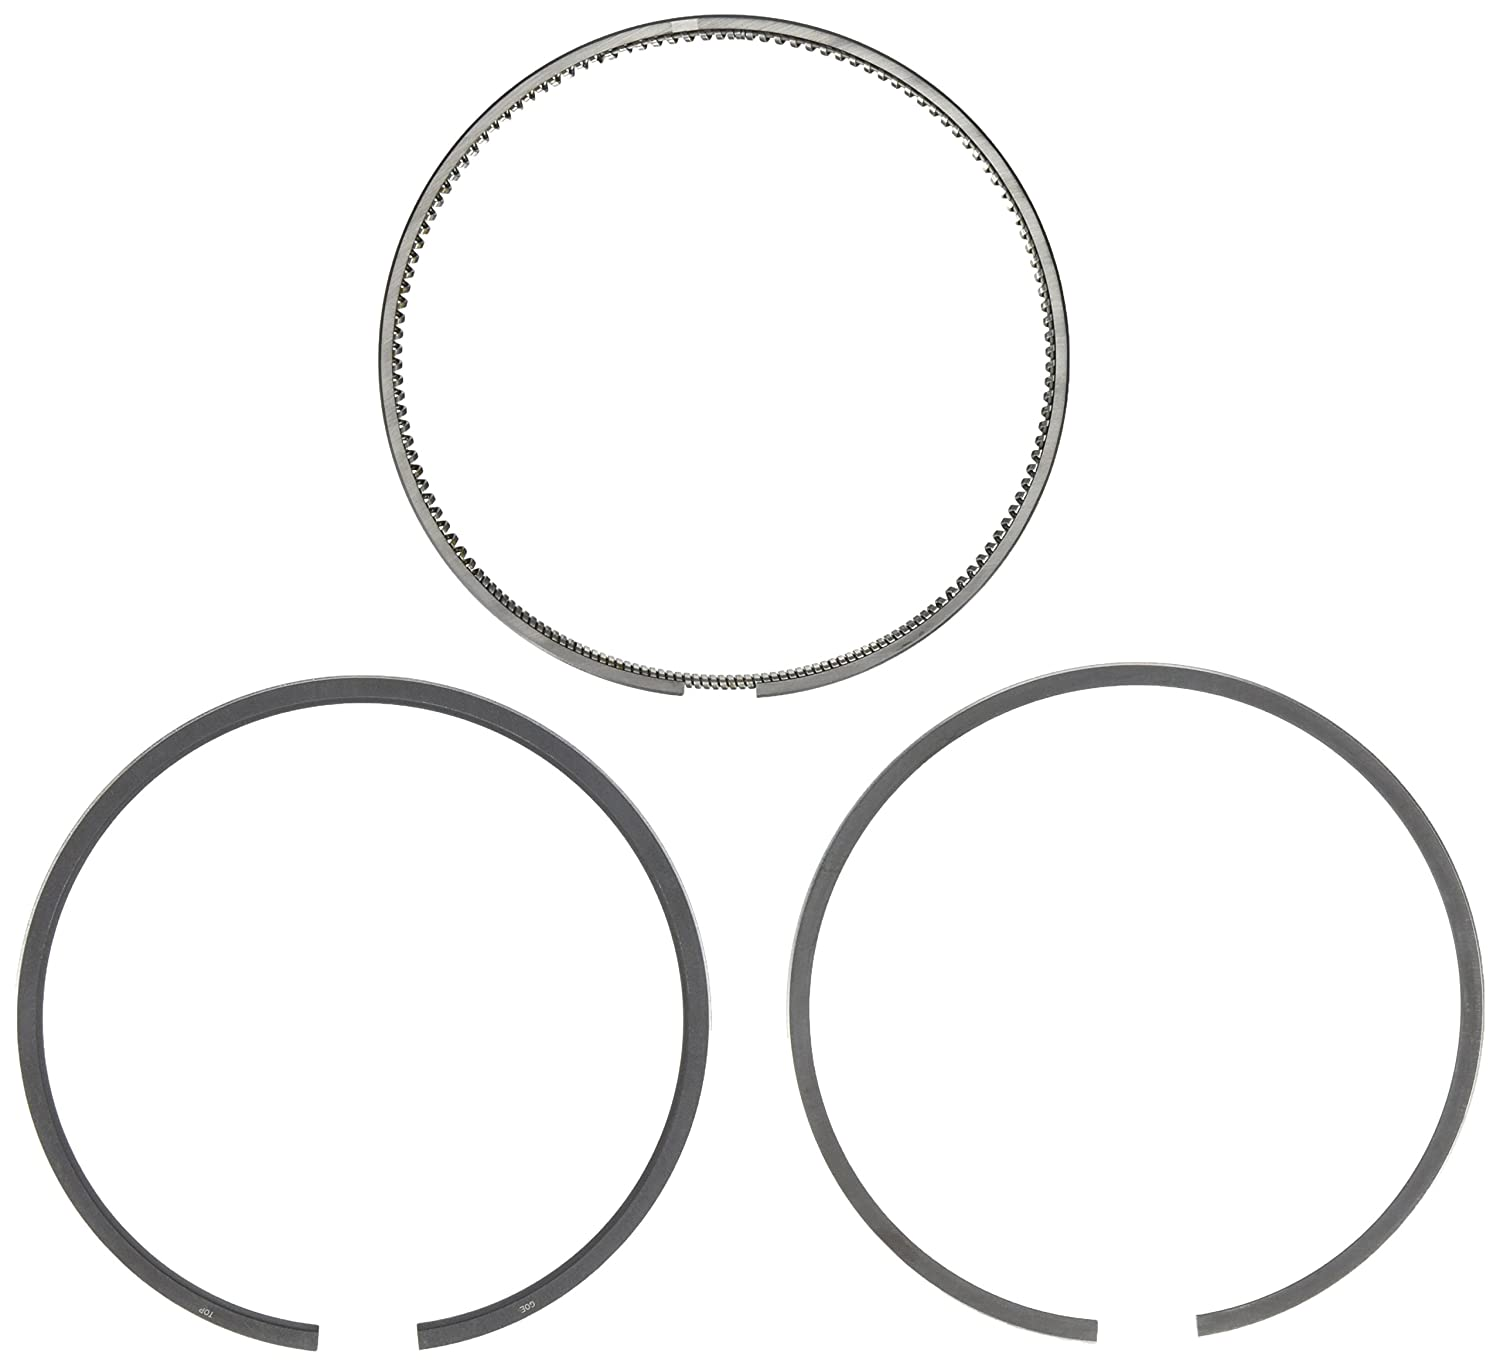 Goetze Engine 08-431700-00 Piston Ring Set AutoMotion Factors Limited